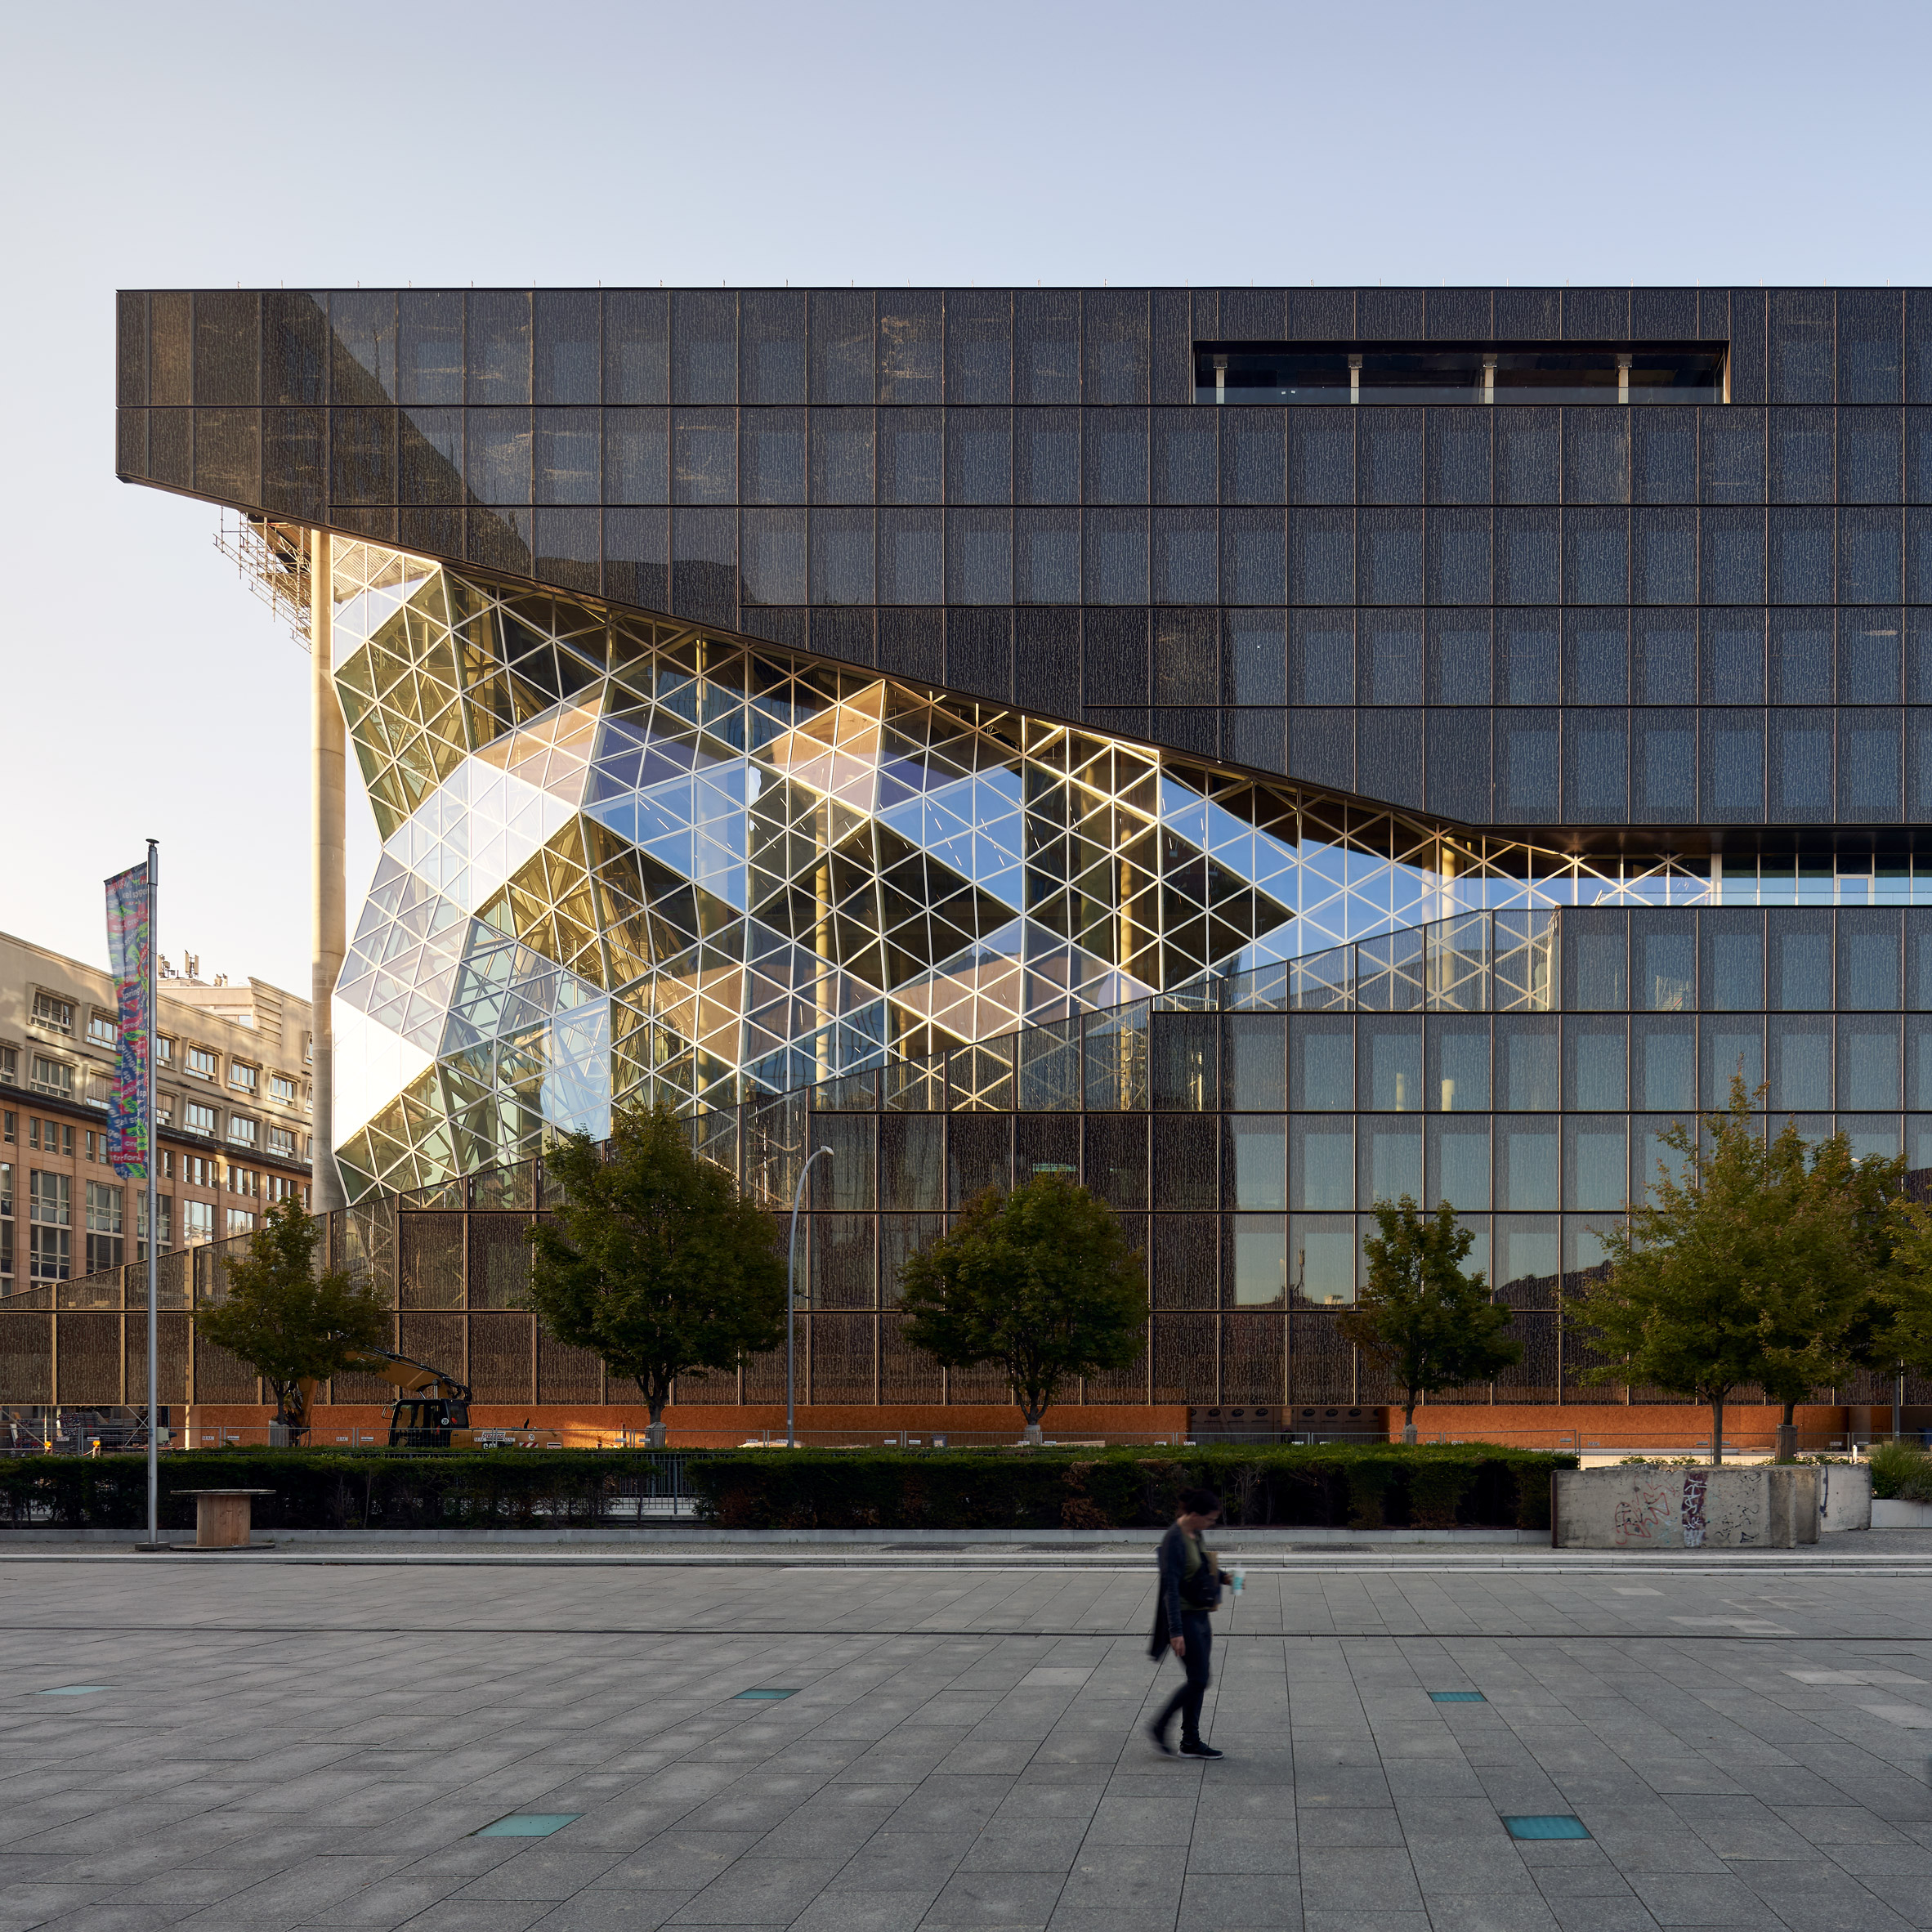 12 new buildings to look forward to in 2020: Axel Springer, Germany, OMA